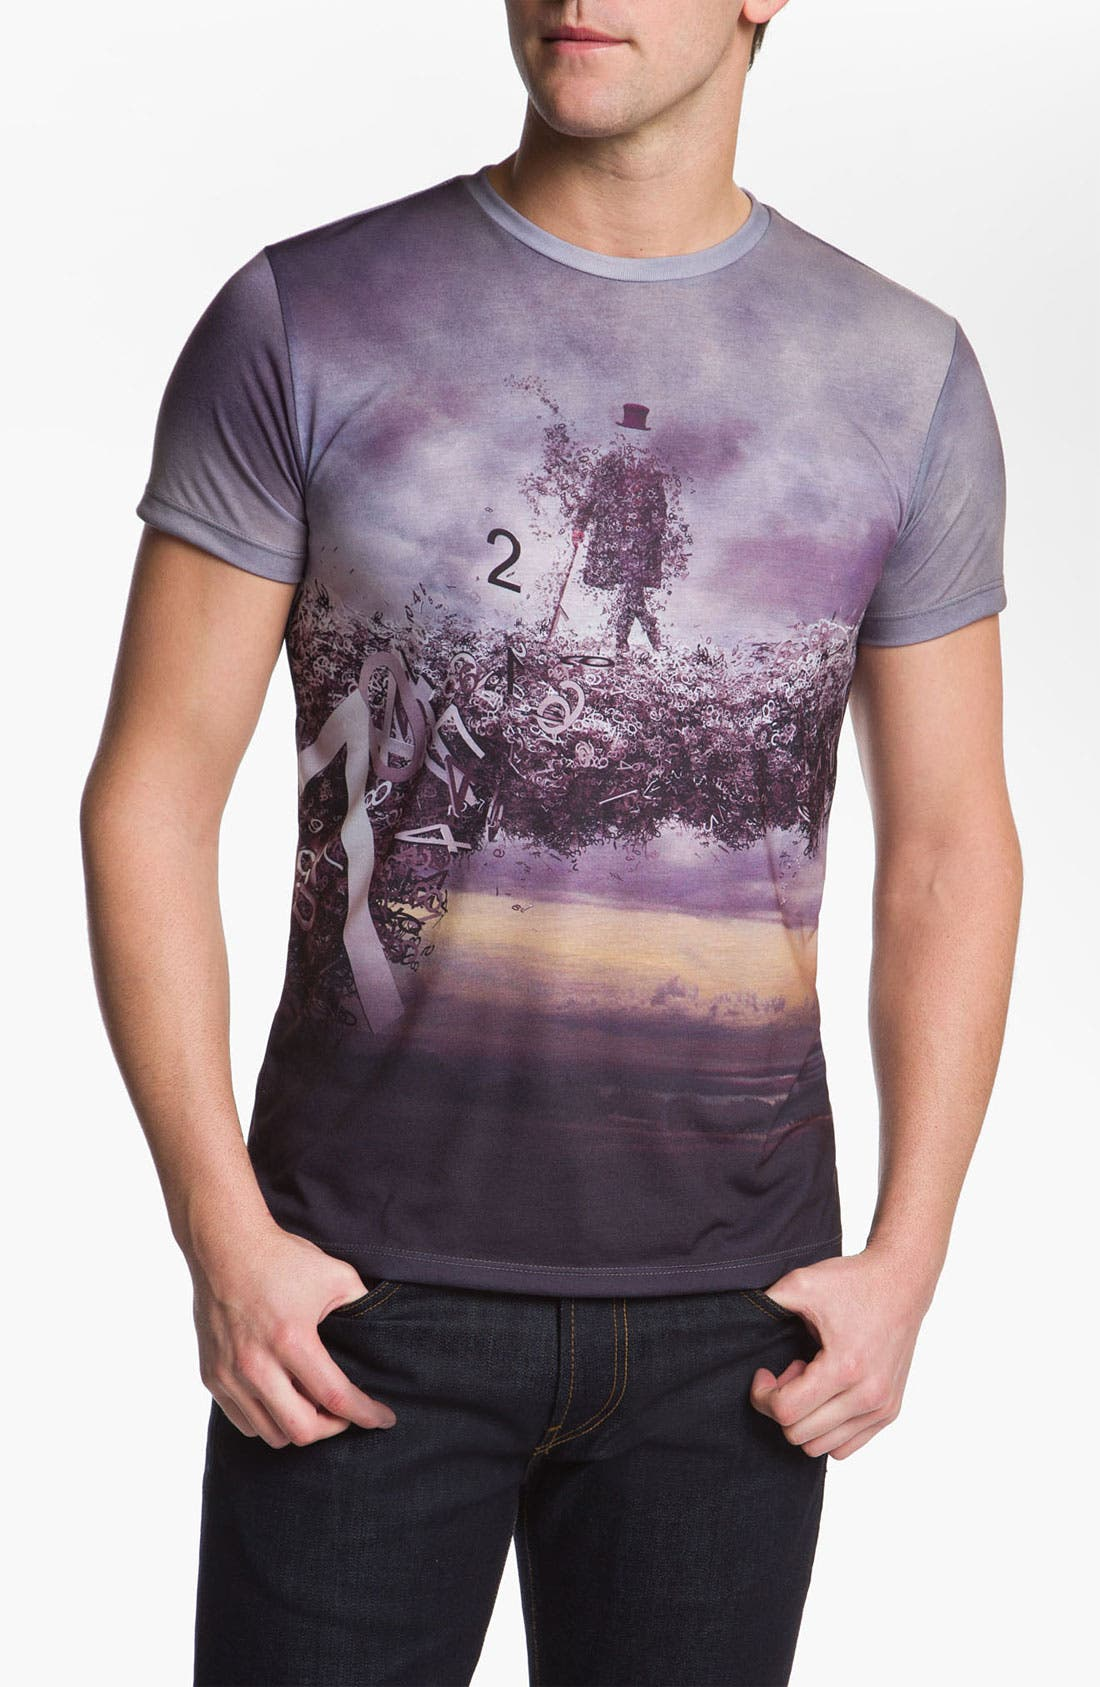 Alternate Image 1 Selected - Imaginary Foundation 'Numeral' Allover Graphic T-Shirt